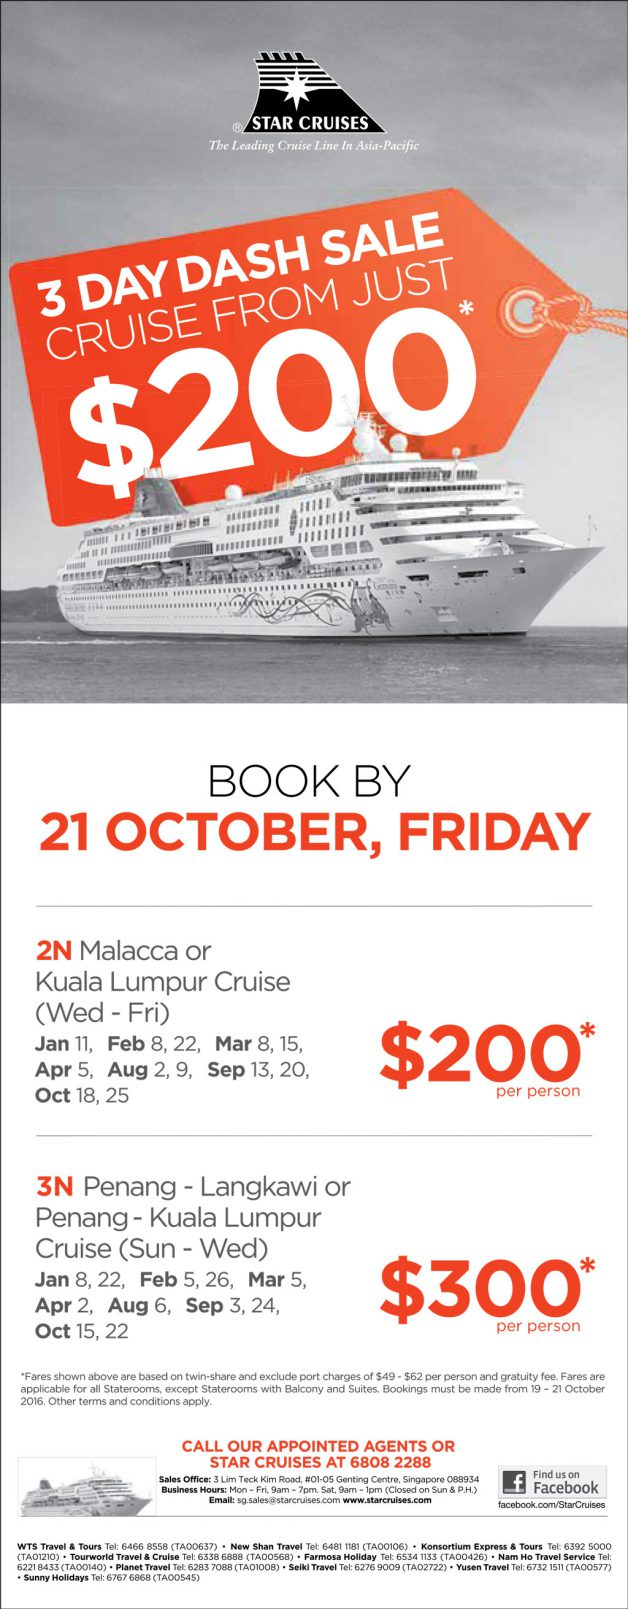 star-cruise-200-offer-promotion-penang-langkawi